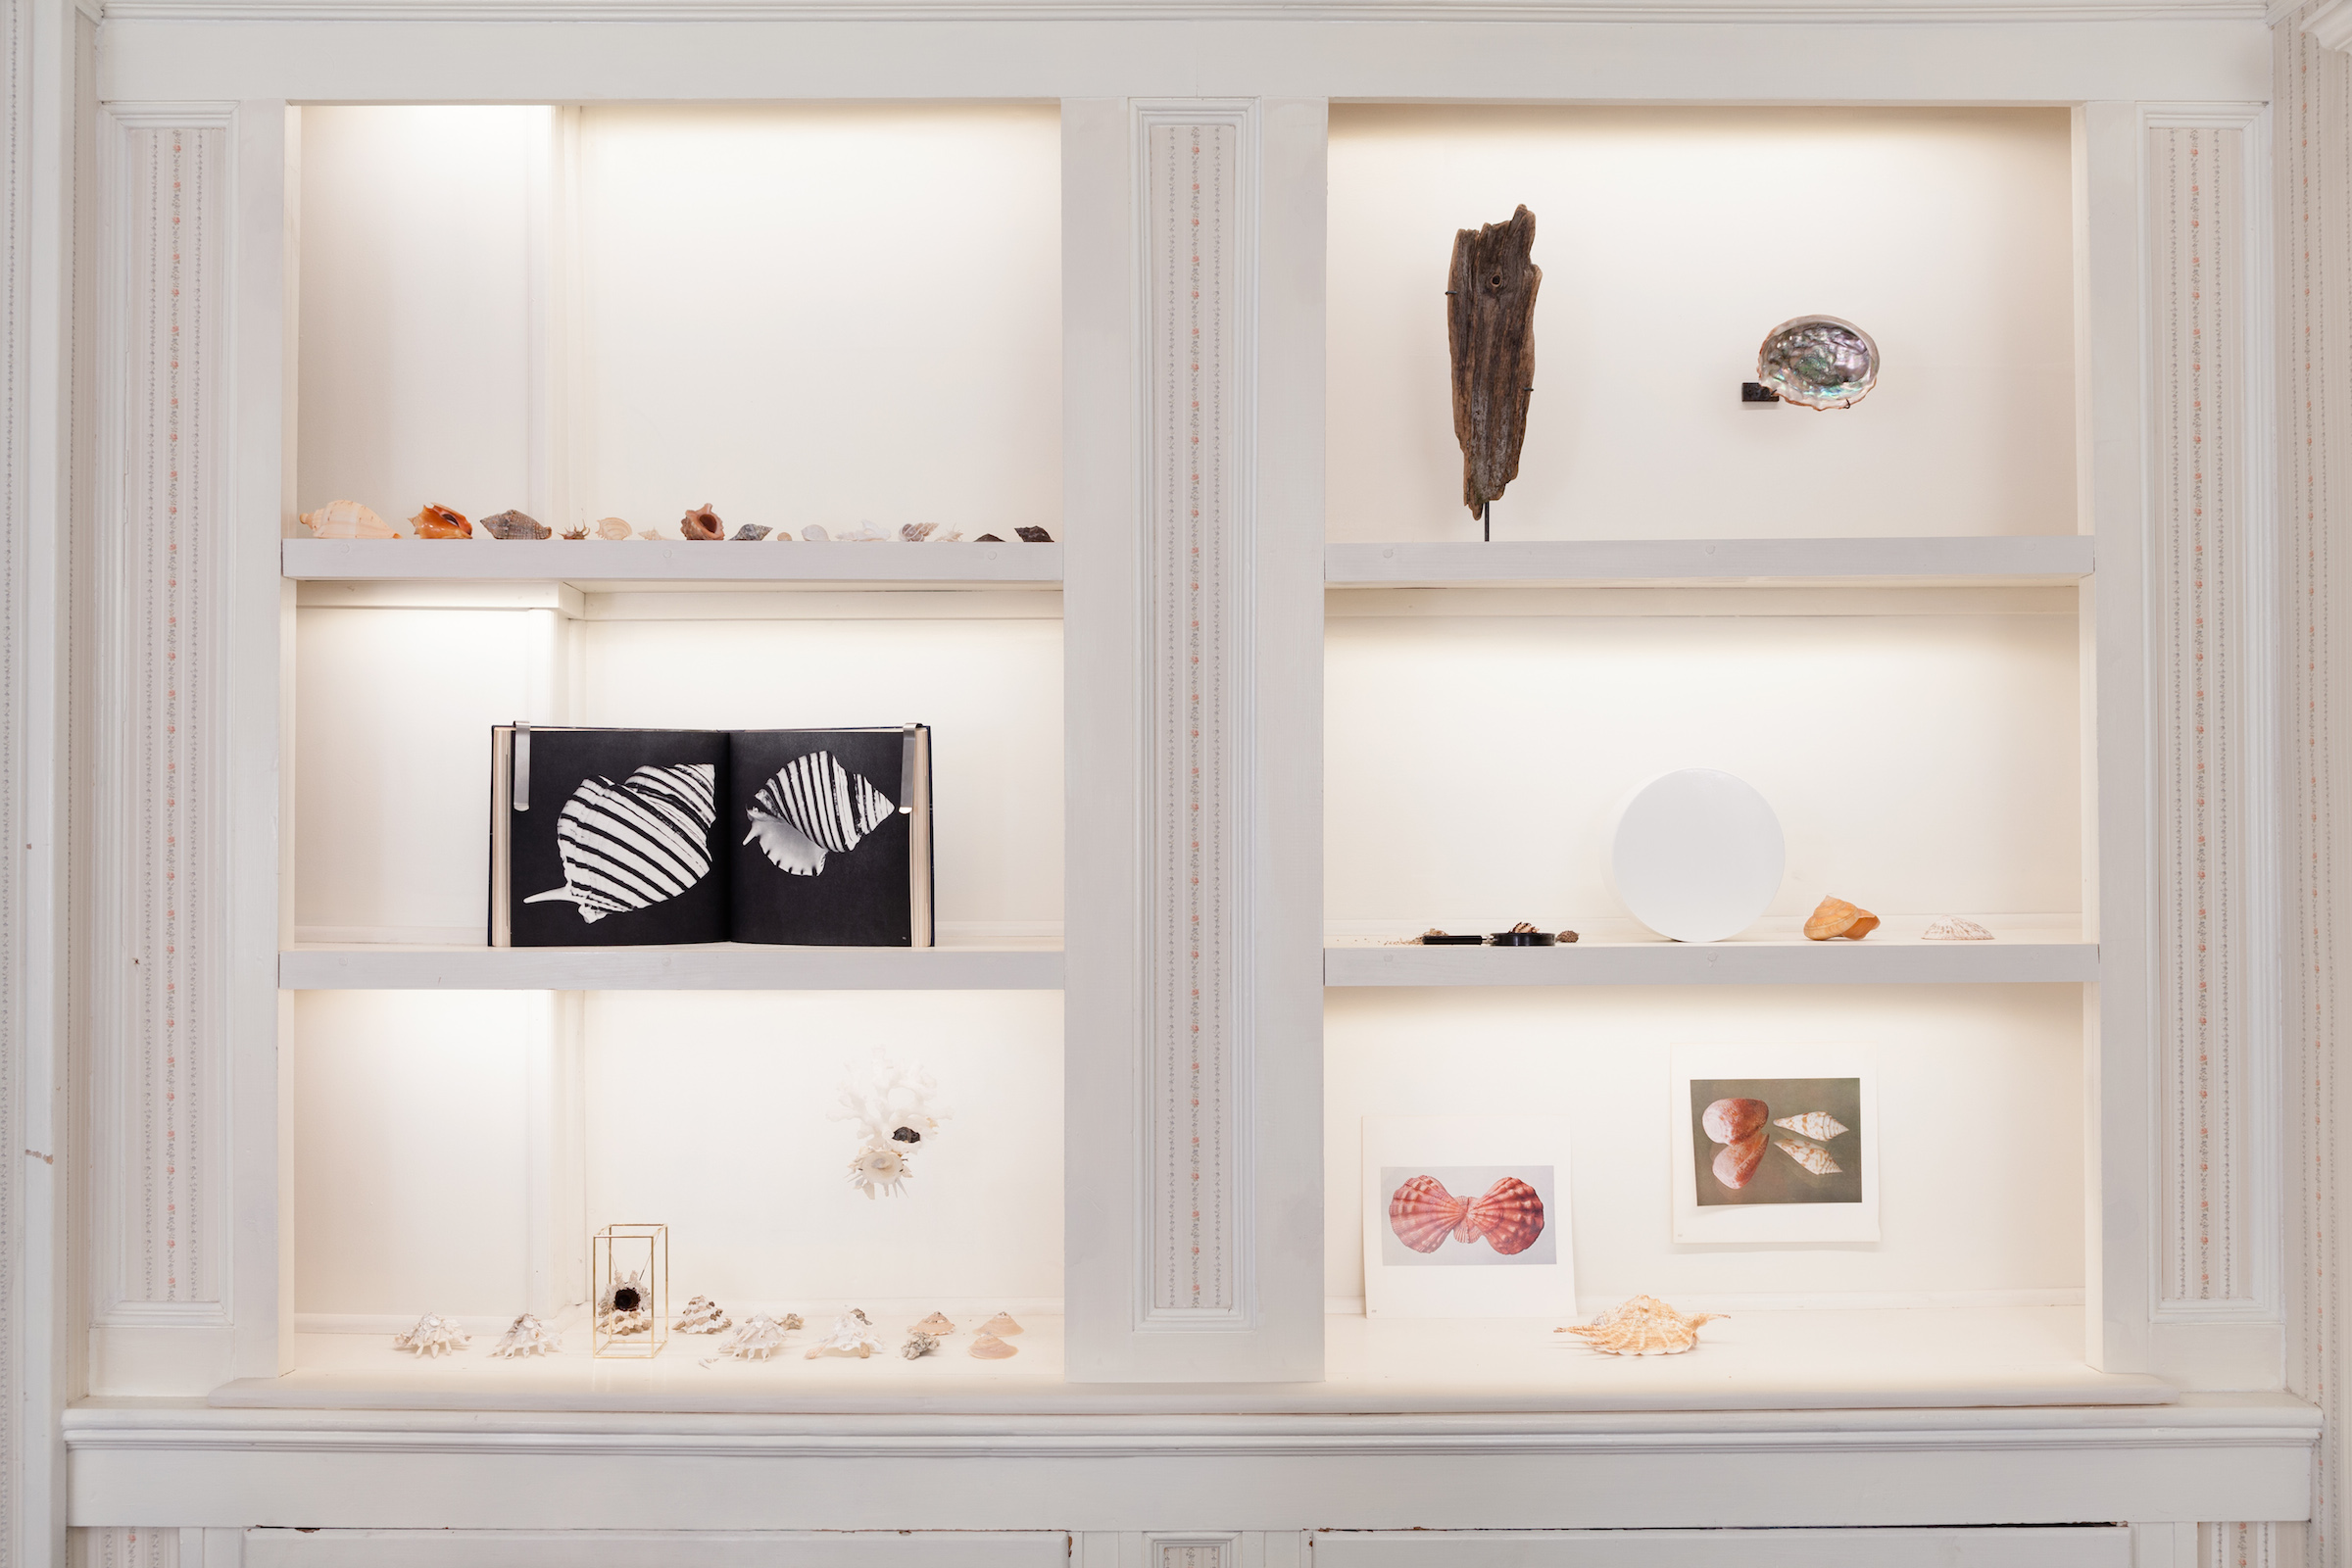 Carol Bove and Barry Rosen,    Untitled arrangement   , 2014, assorted seashells collected by Barry Rosen and Carol Bove, dimensions variable